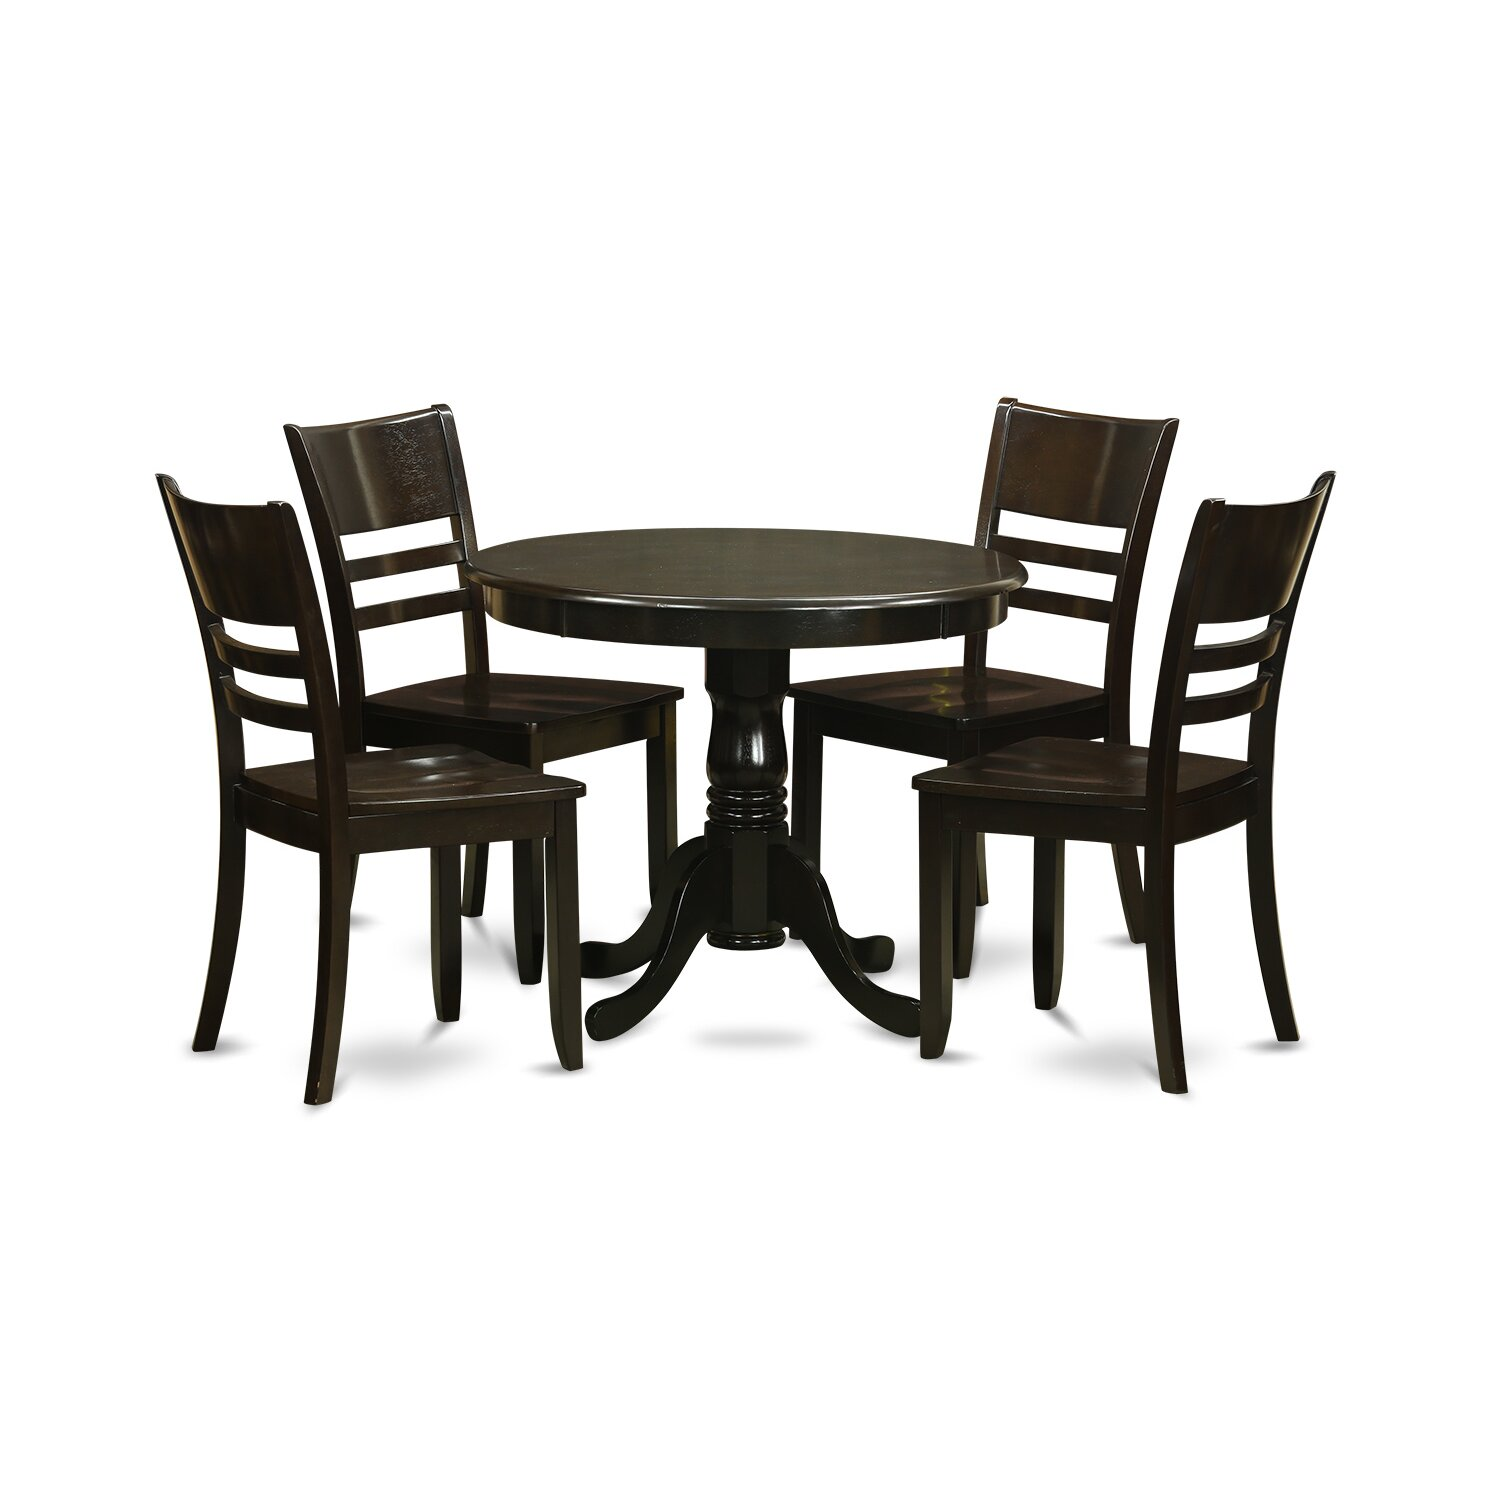 Wooden importers 5 piece dining set wayfair for 5 piece dining room sets